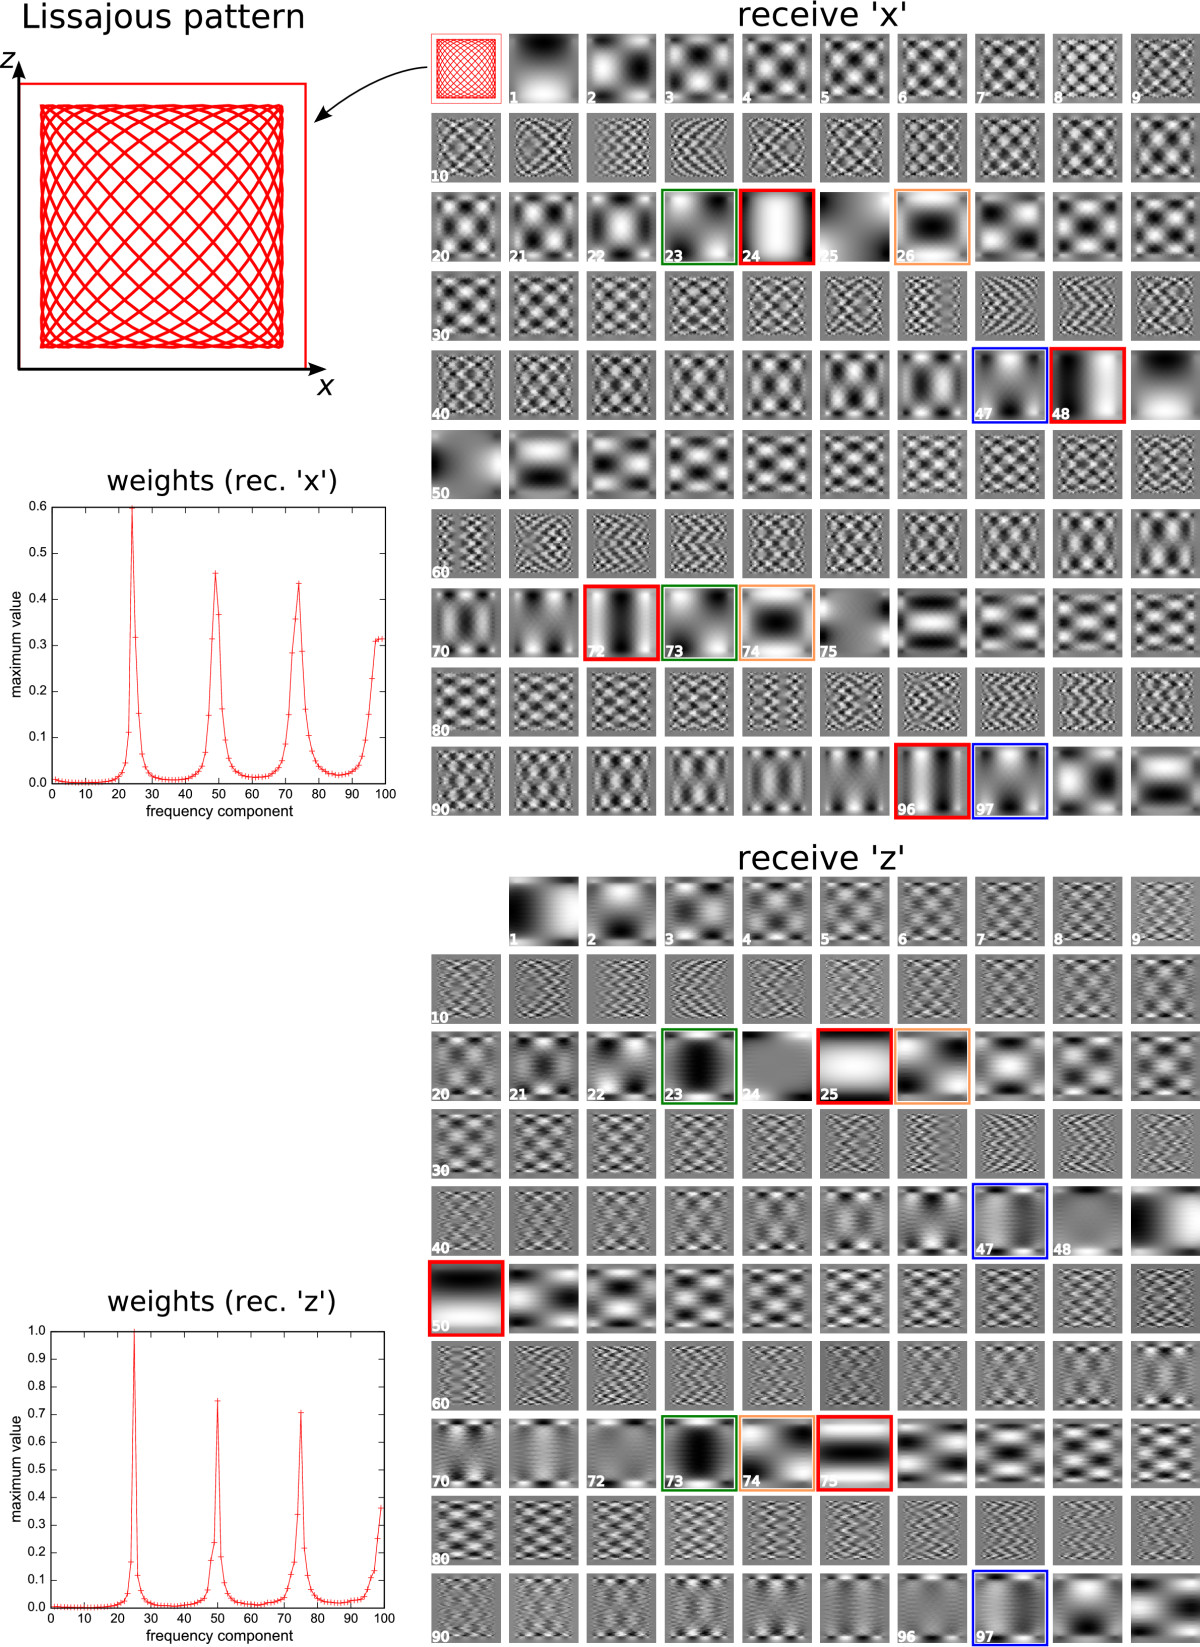 http://static-content.springer.com/image/art%3A10.1186%2F1471-2342-9-4/MediaObjects/12880_2008_Article_62_Fig8_HTML.jpg